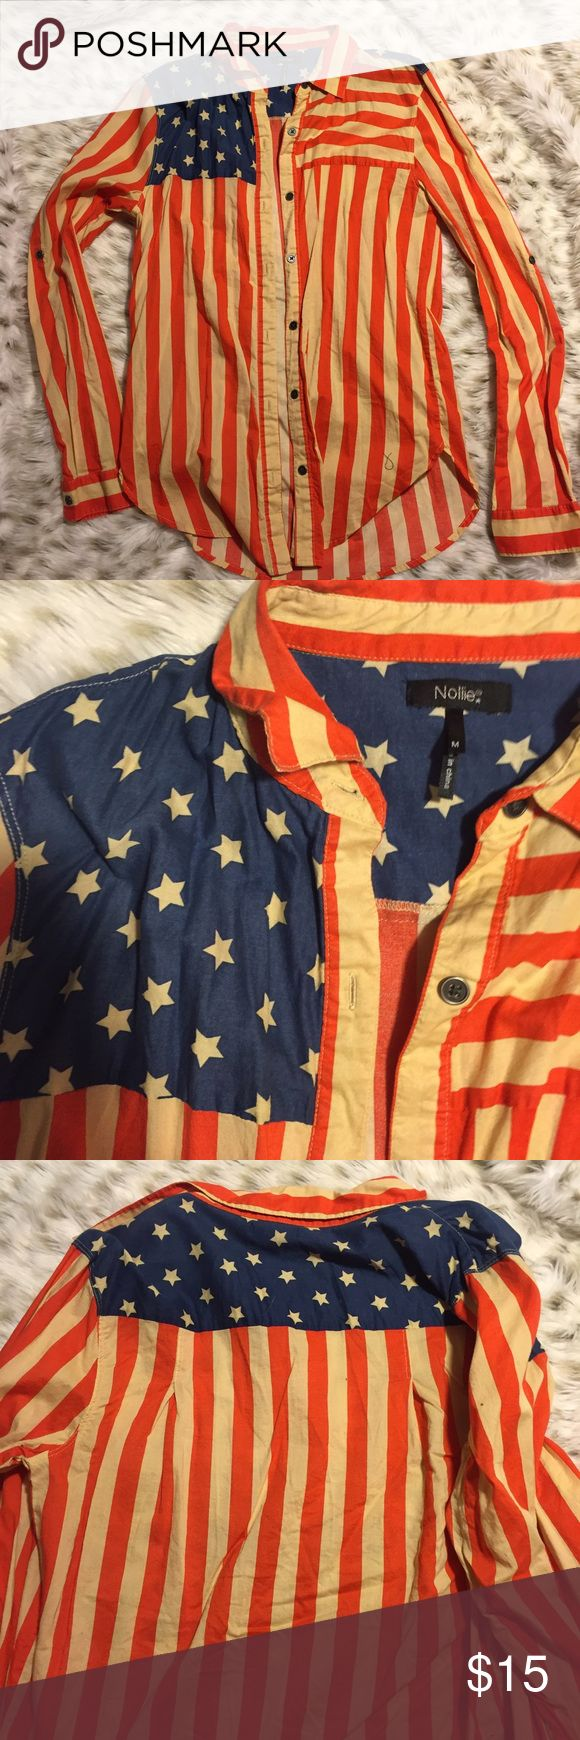 Nollie American Flag Button Down Shirt American flag button down. Only worn once. Nollie size medium. No flaws so cute! Nollie Tops Button Down Shirts